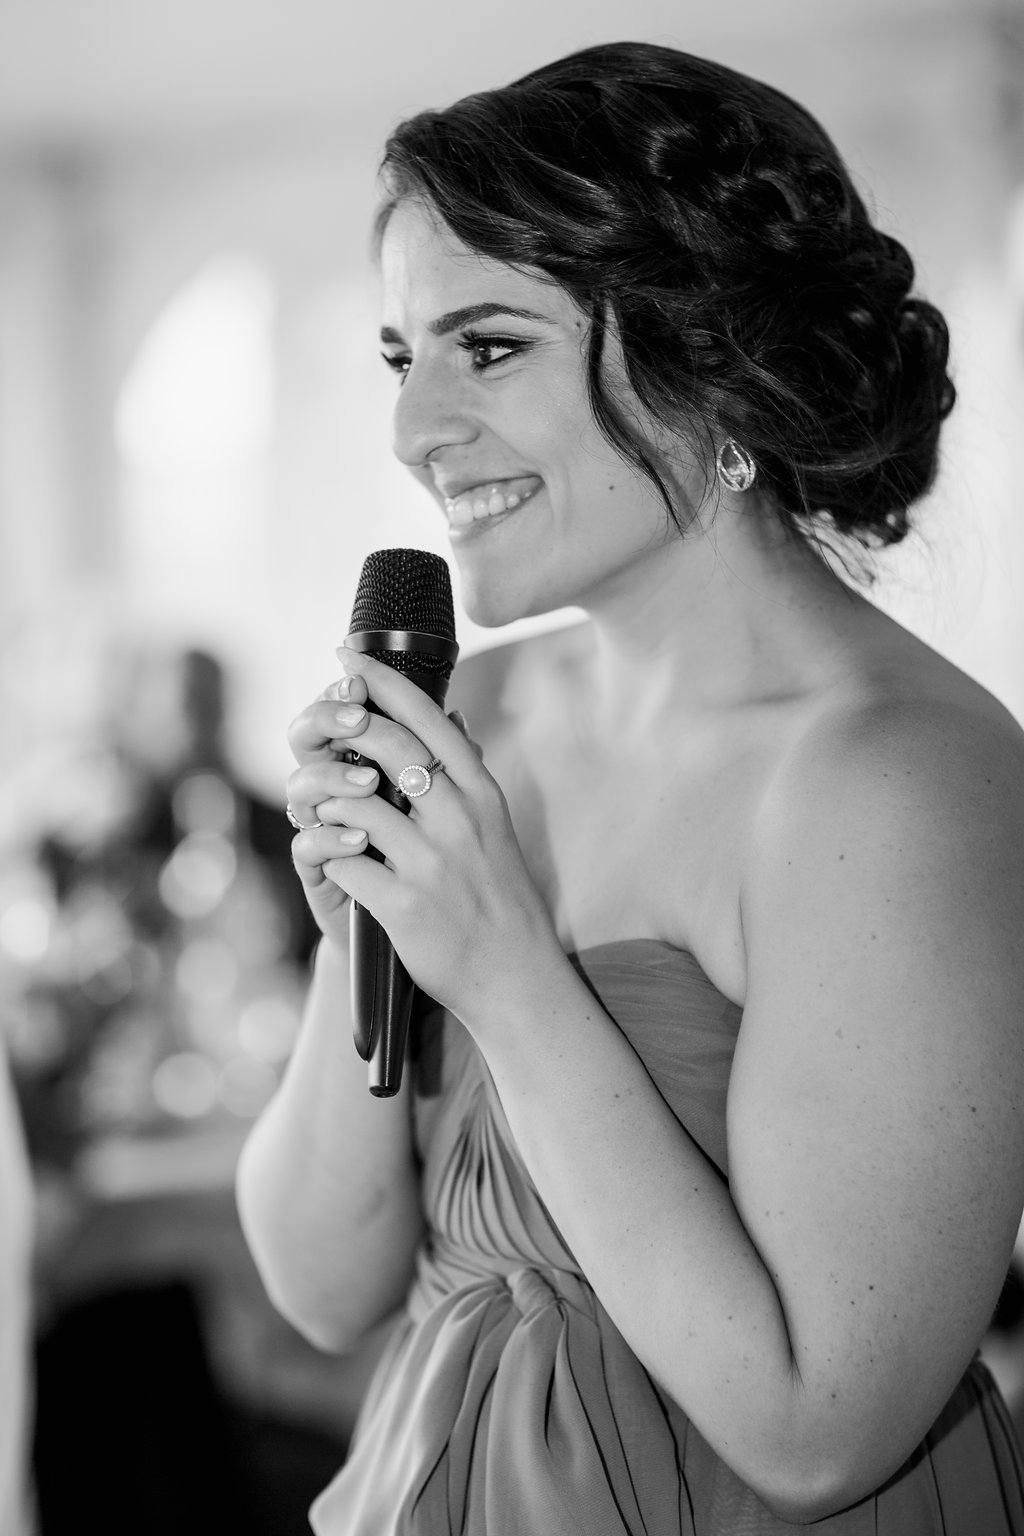 Hey! This is me, having a [MOH]ment at my dear friend Dana's wedding in 2015. Photograph by Katie Kett Photography